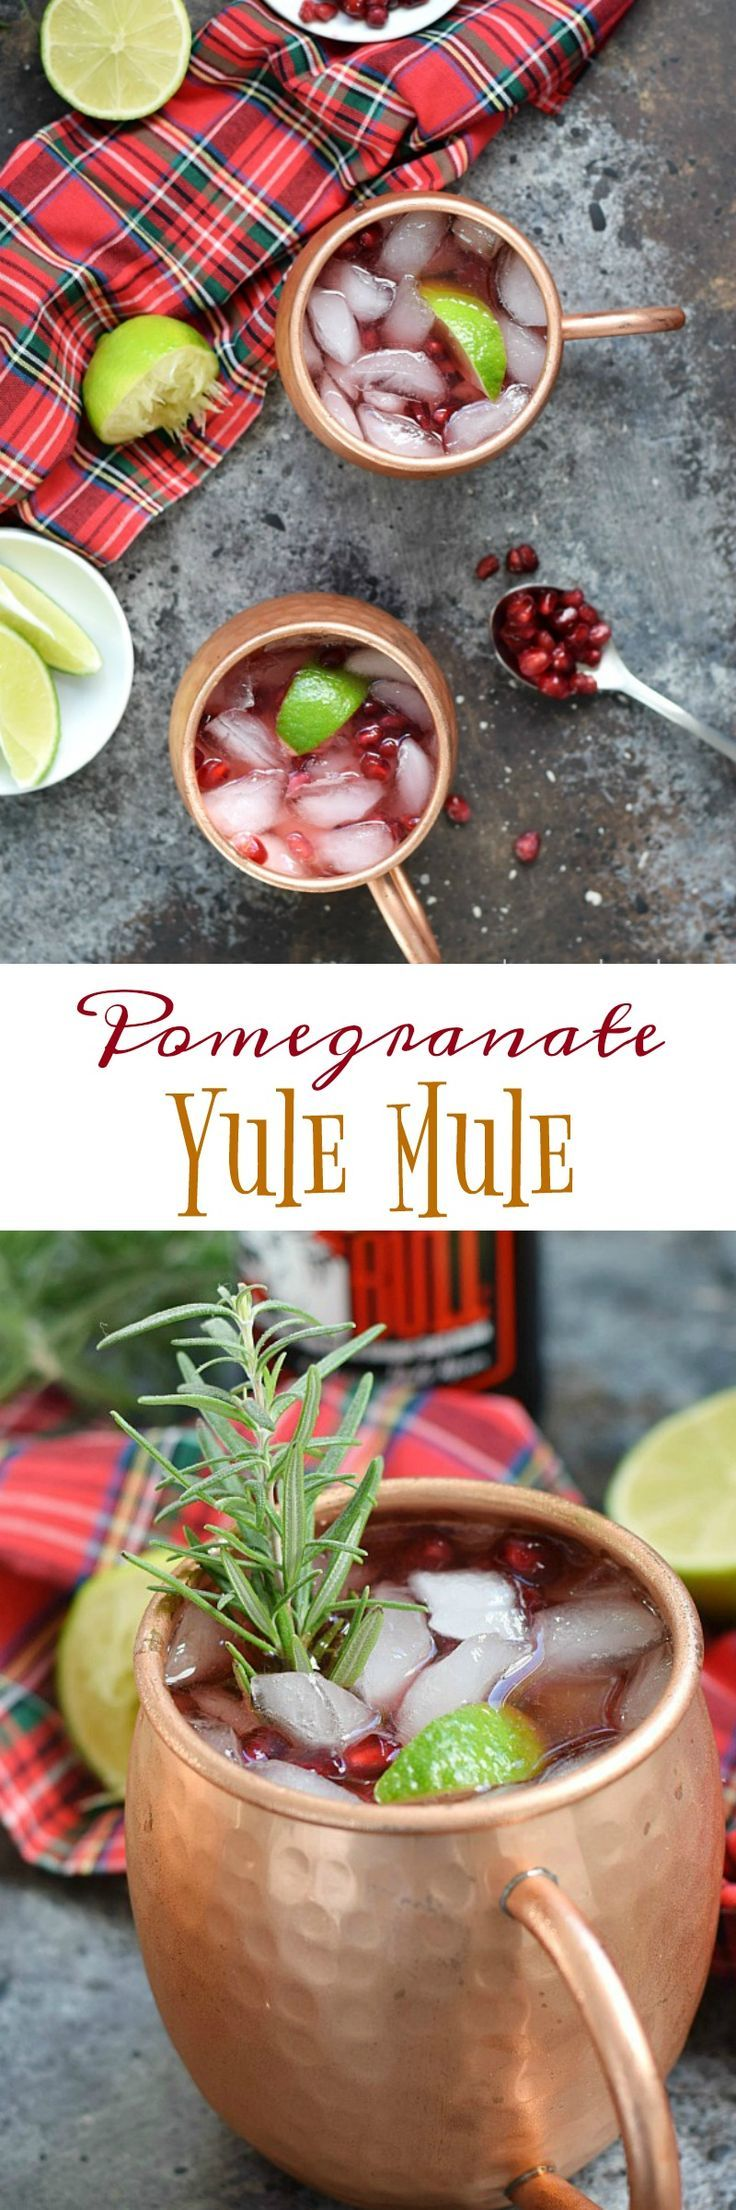 This Pomegranate Yule Mule is so simple make, you just need pomegranate juice, vodka, ginger beer, limes, and some ice for this perfectly delicious holiday cocktail | cookingwithcurls.com